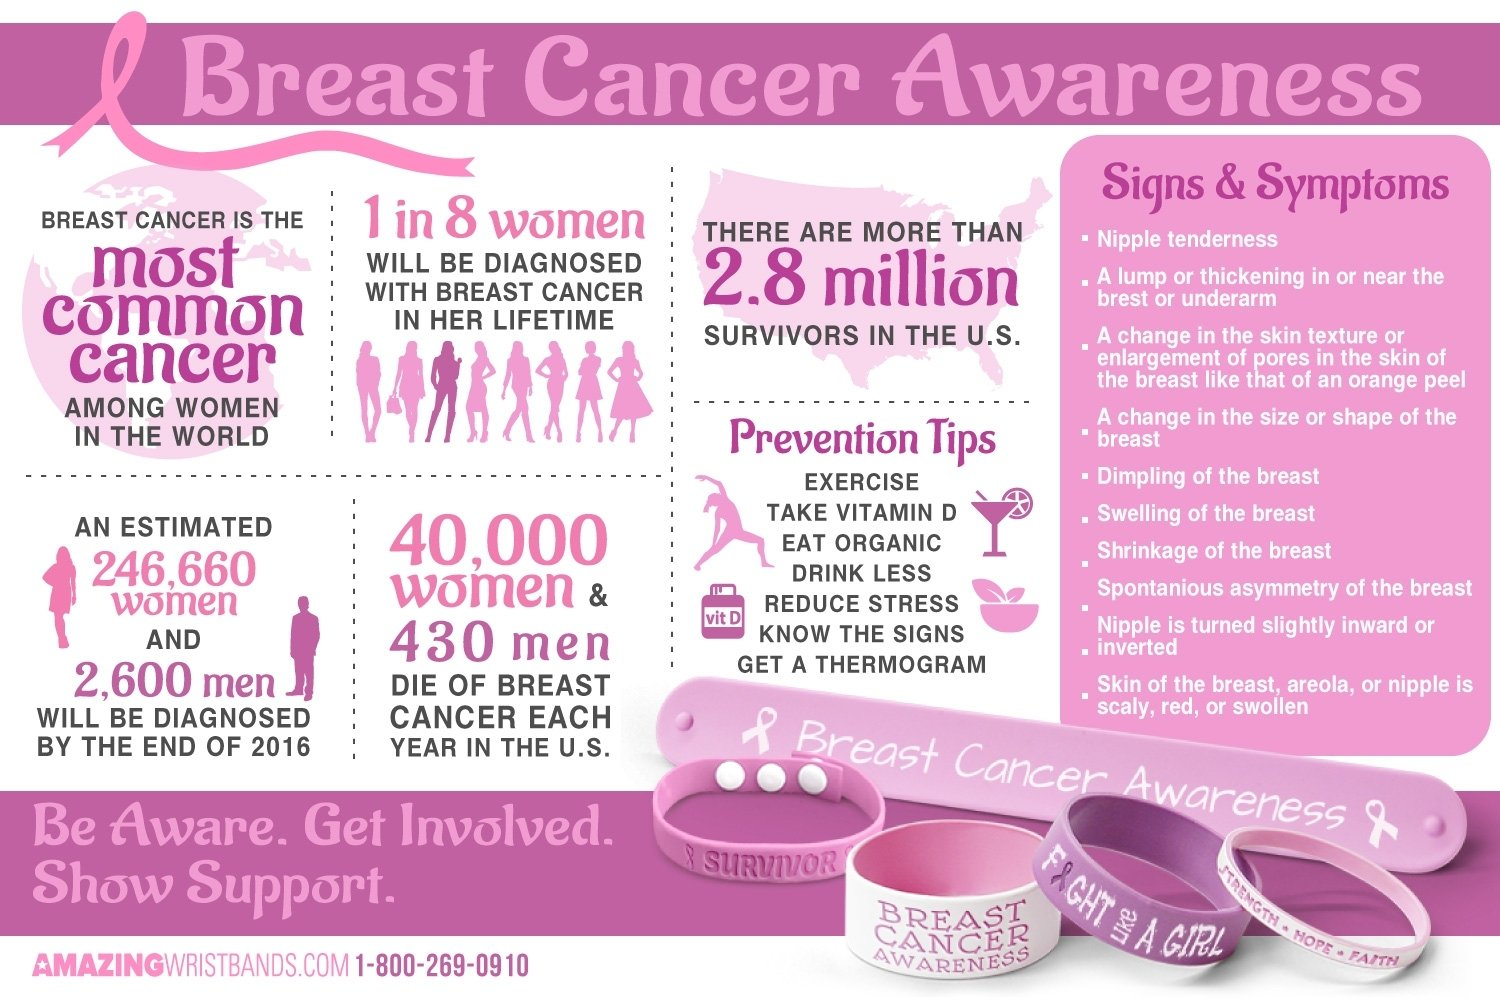 10 Cute Breast Cancer Awareness Fundraiser Ideas fight for breast cancer with custom silicone wristbands 2 2020